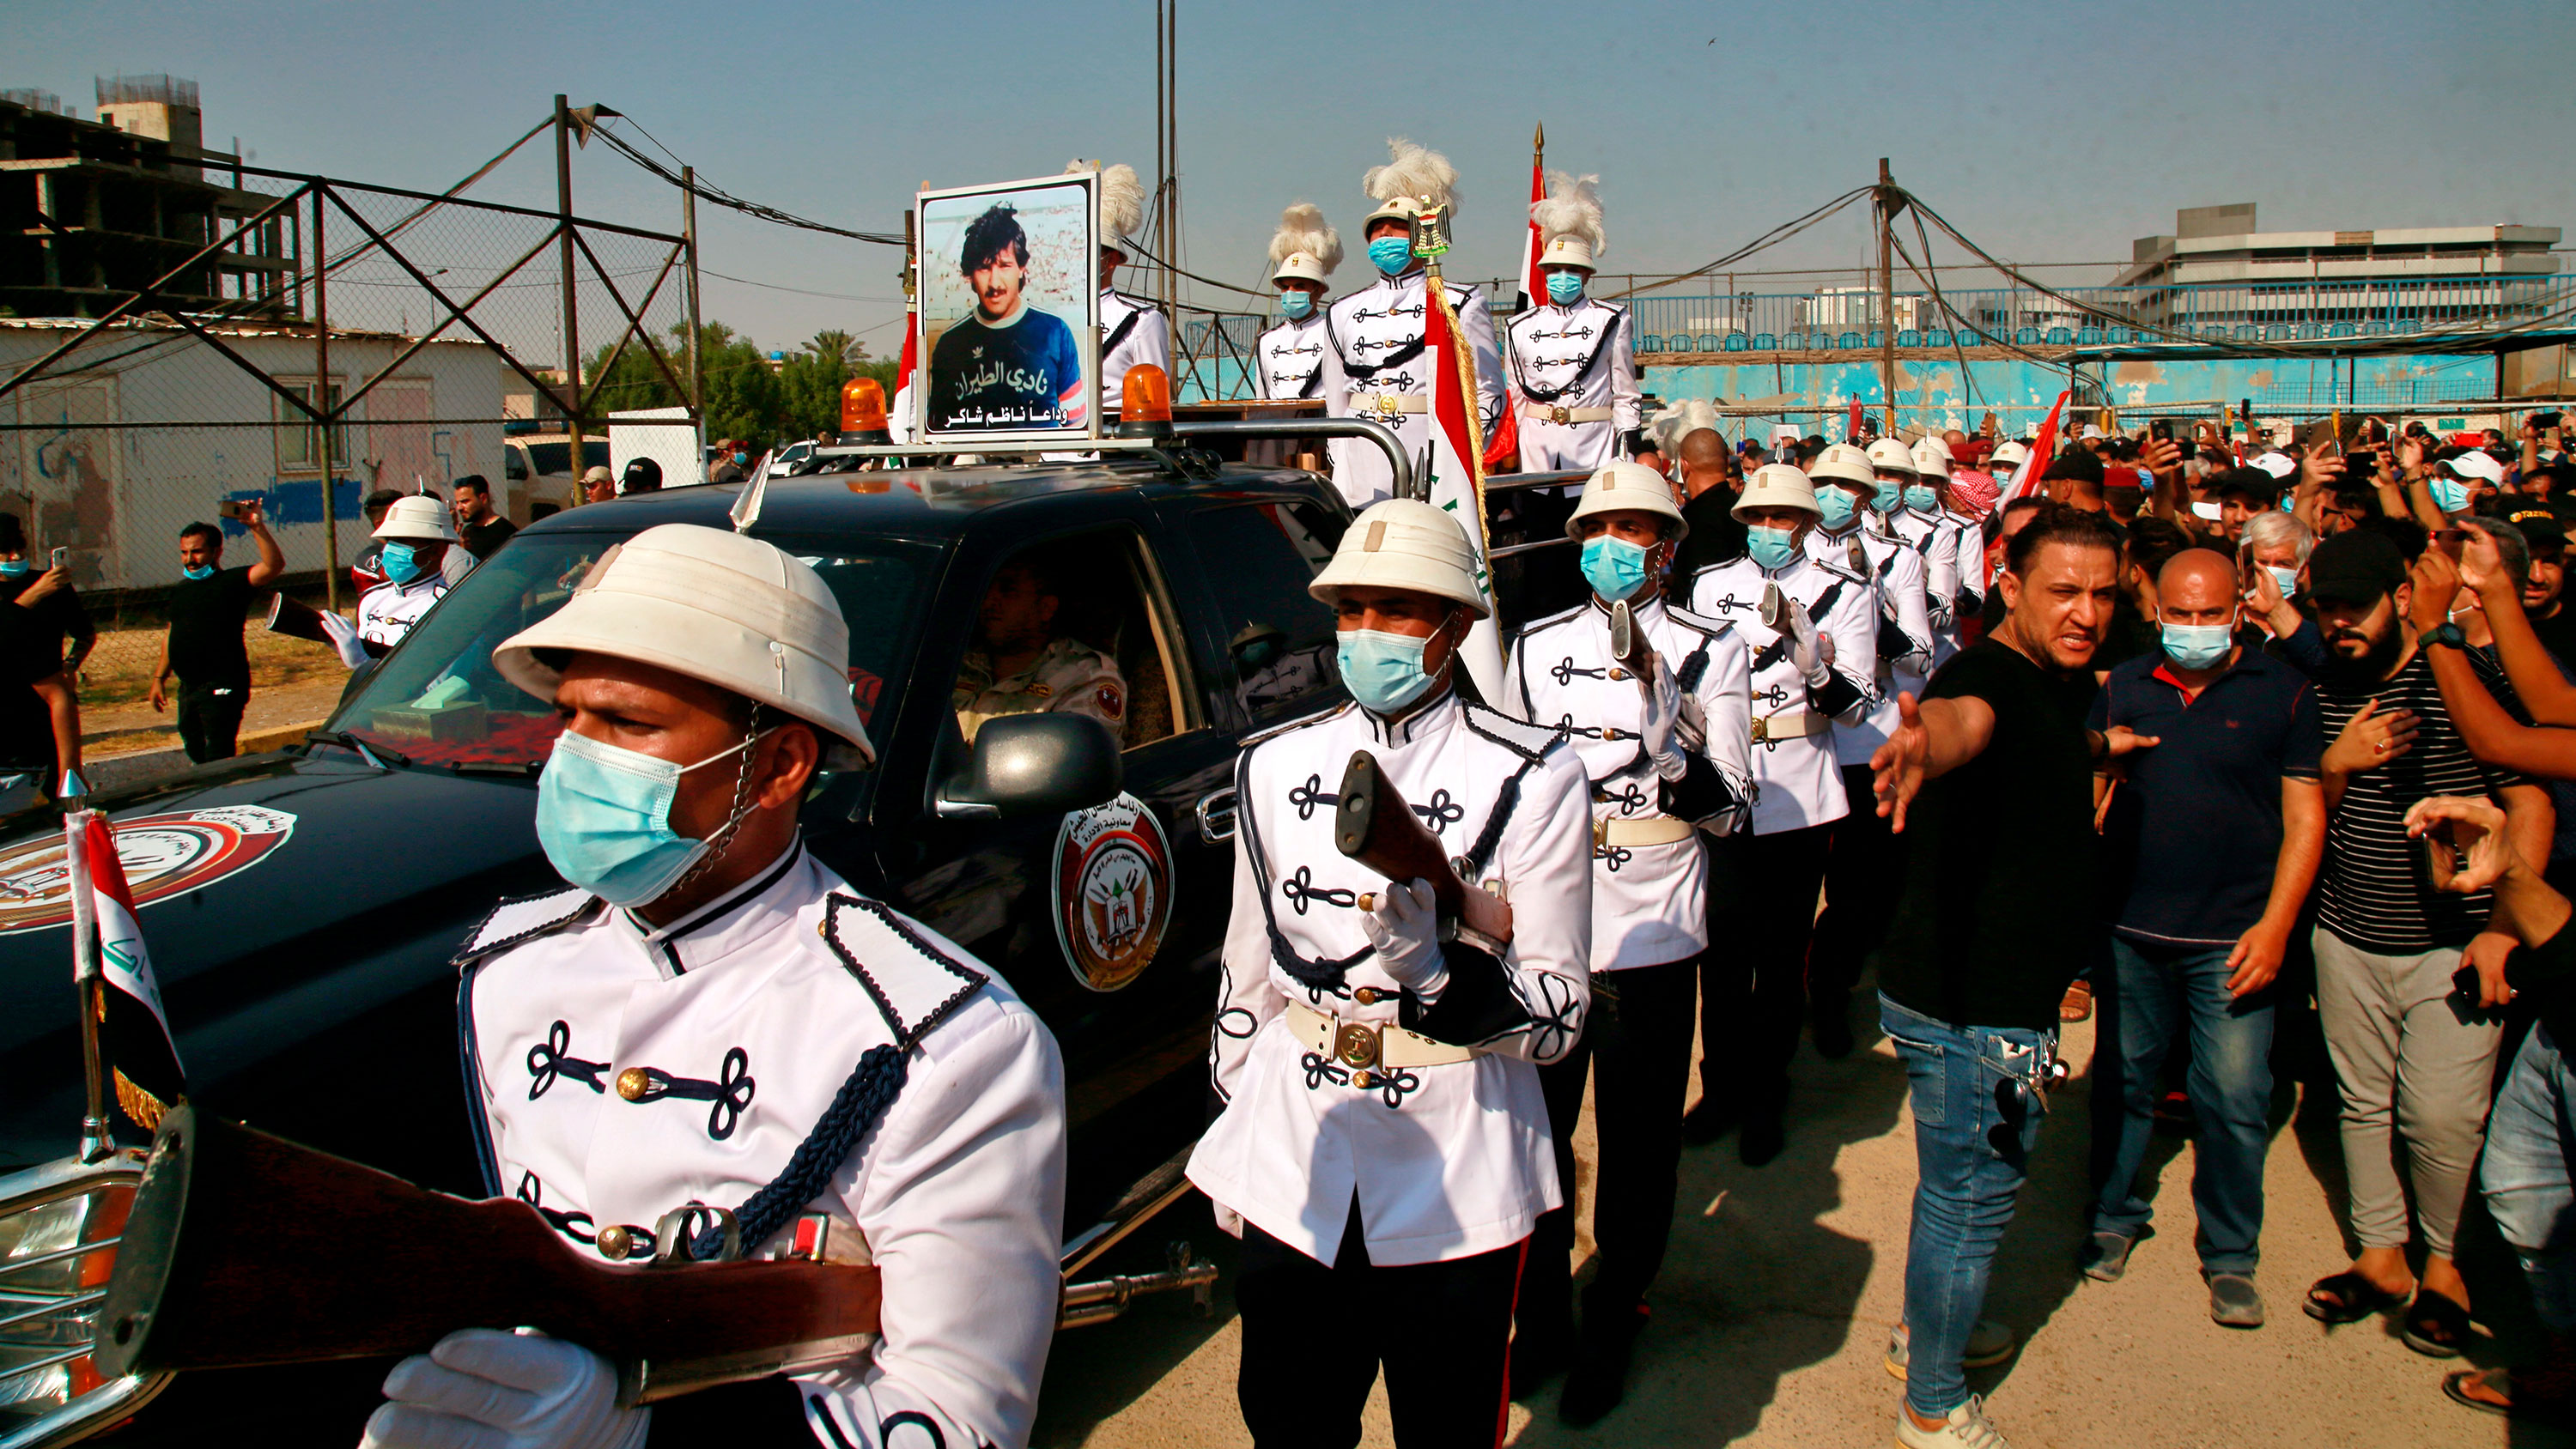 A military band and soccer fans escort the coffin of former Iraqi soccer star Nadhim Shaker during his funeral procession in Baghdad, Iraq, on September 12.